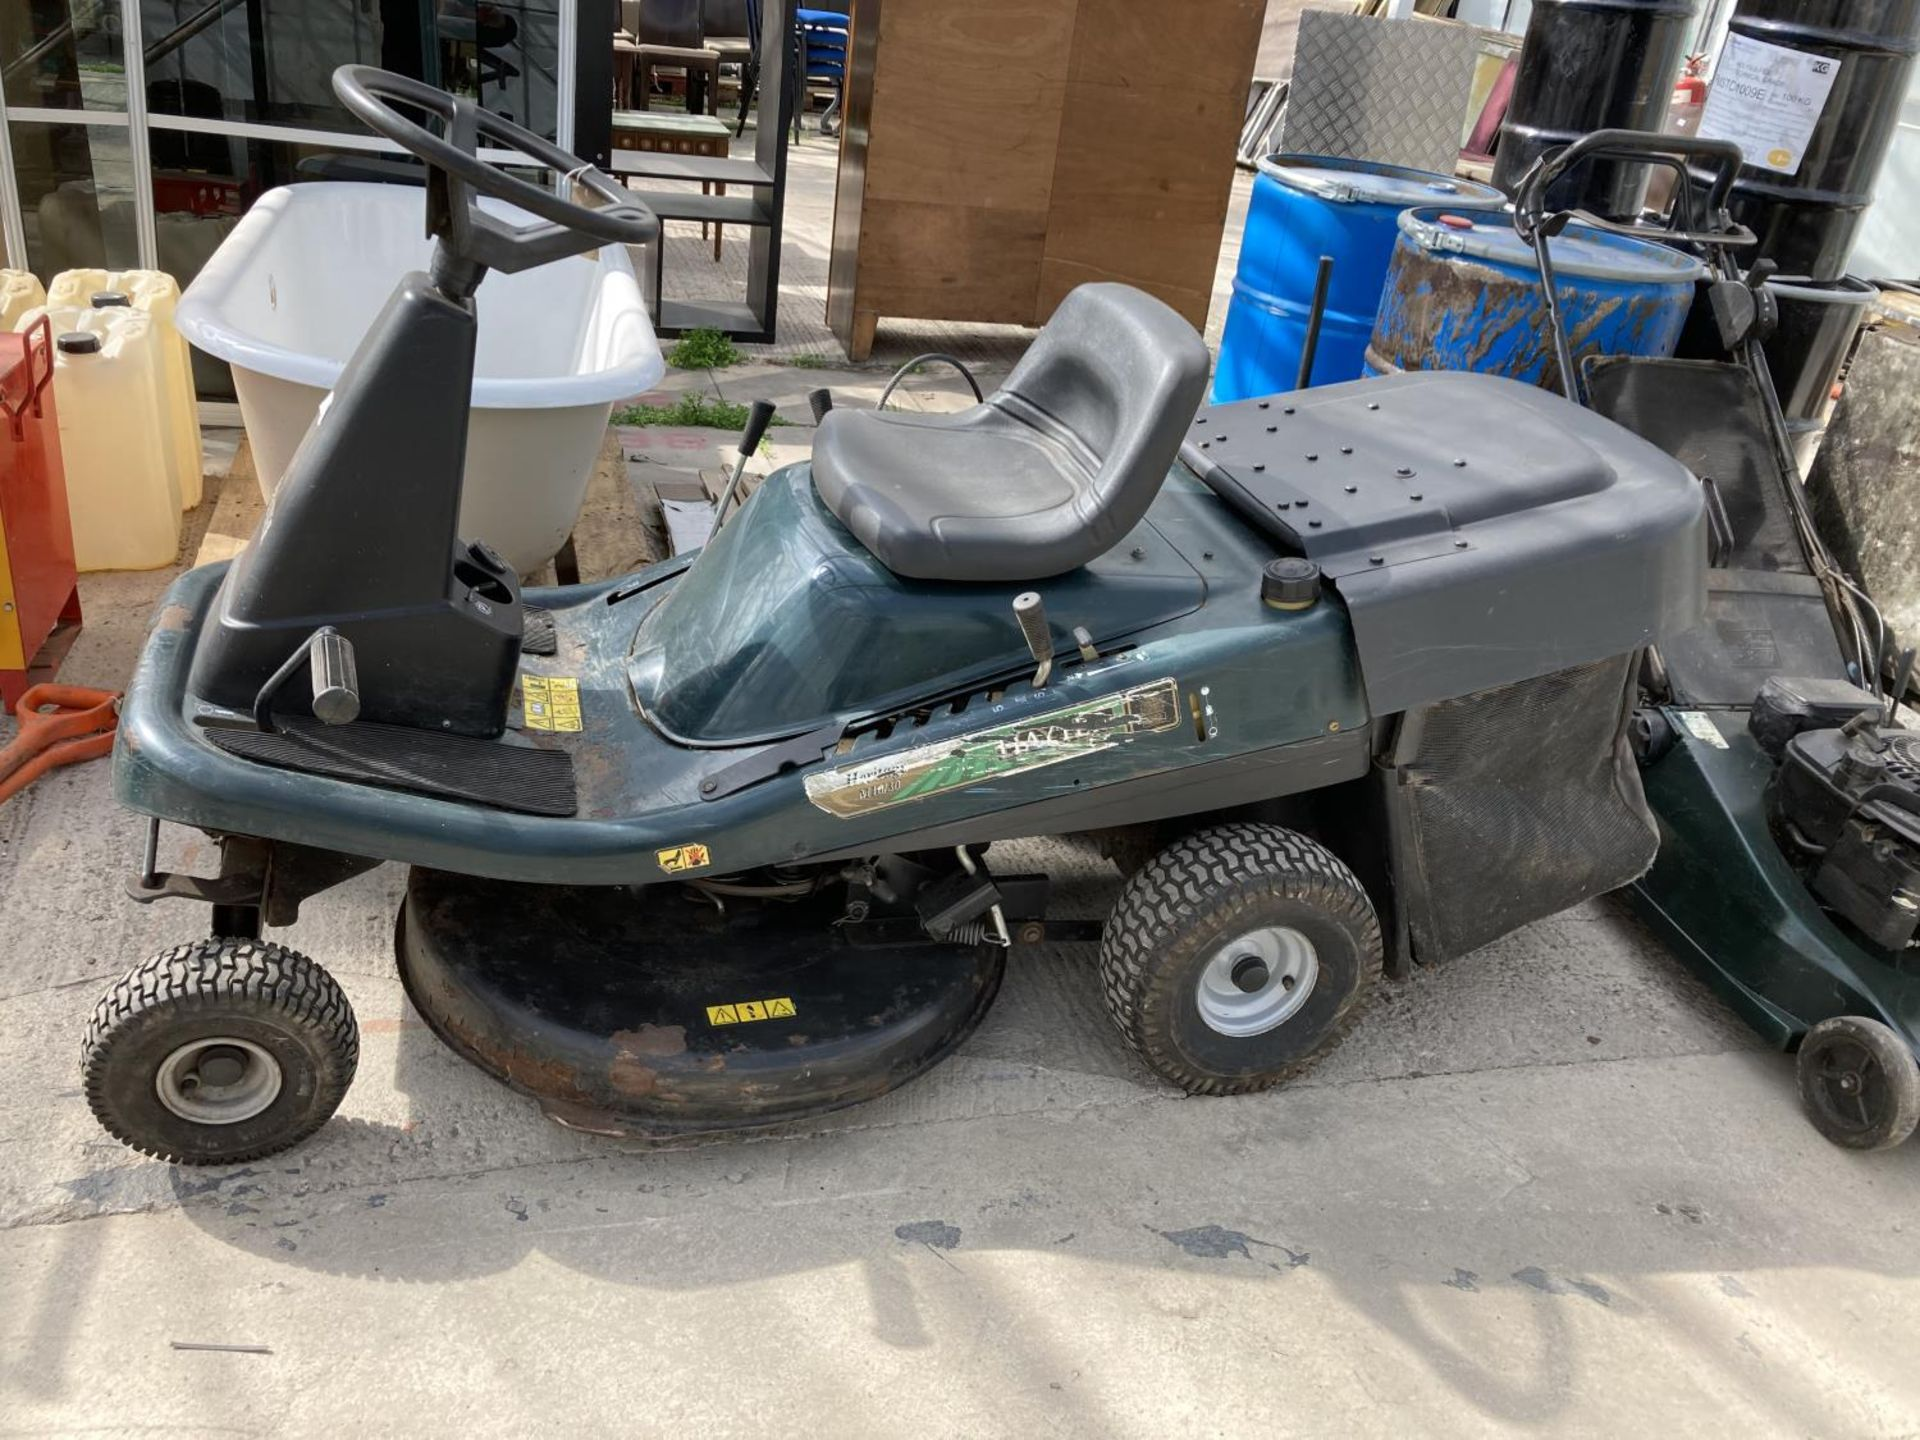 A HAYTER 10 HP 30 INCH ELECTRIC START RIDE ON LAWN MOWER BELIEVED WORKING NO WARRANTY NO VAT - Image 2 of 2